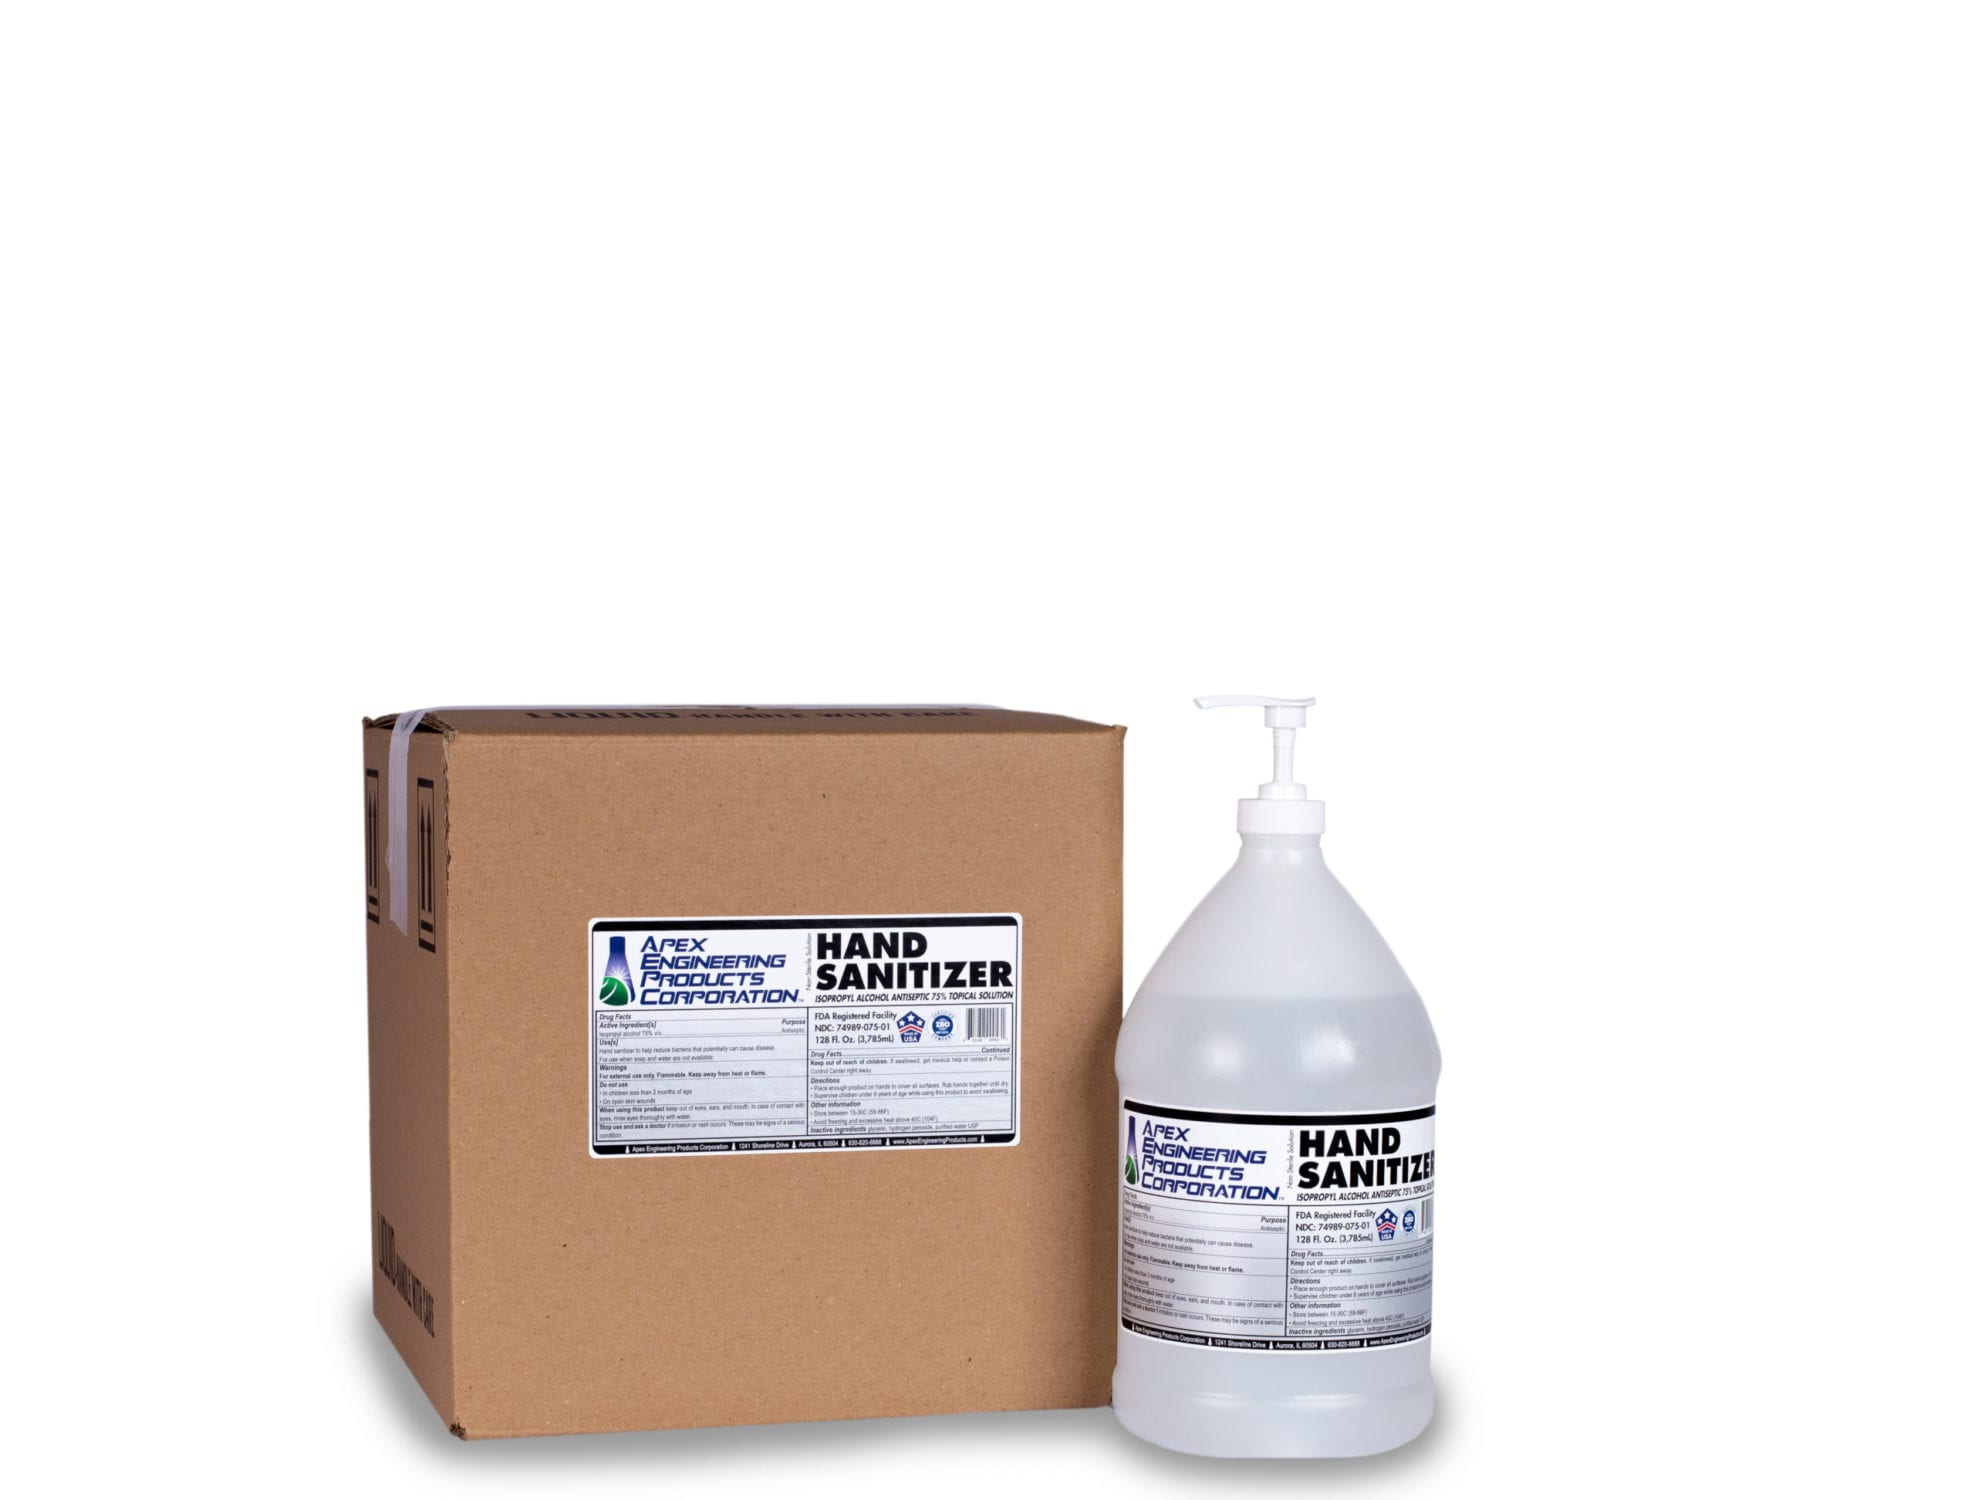 Apex Hand Sanitizer. Image of a box of hand sanitizer next to a gallon jug of hand sanitizer.